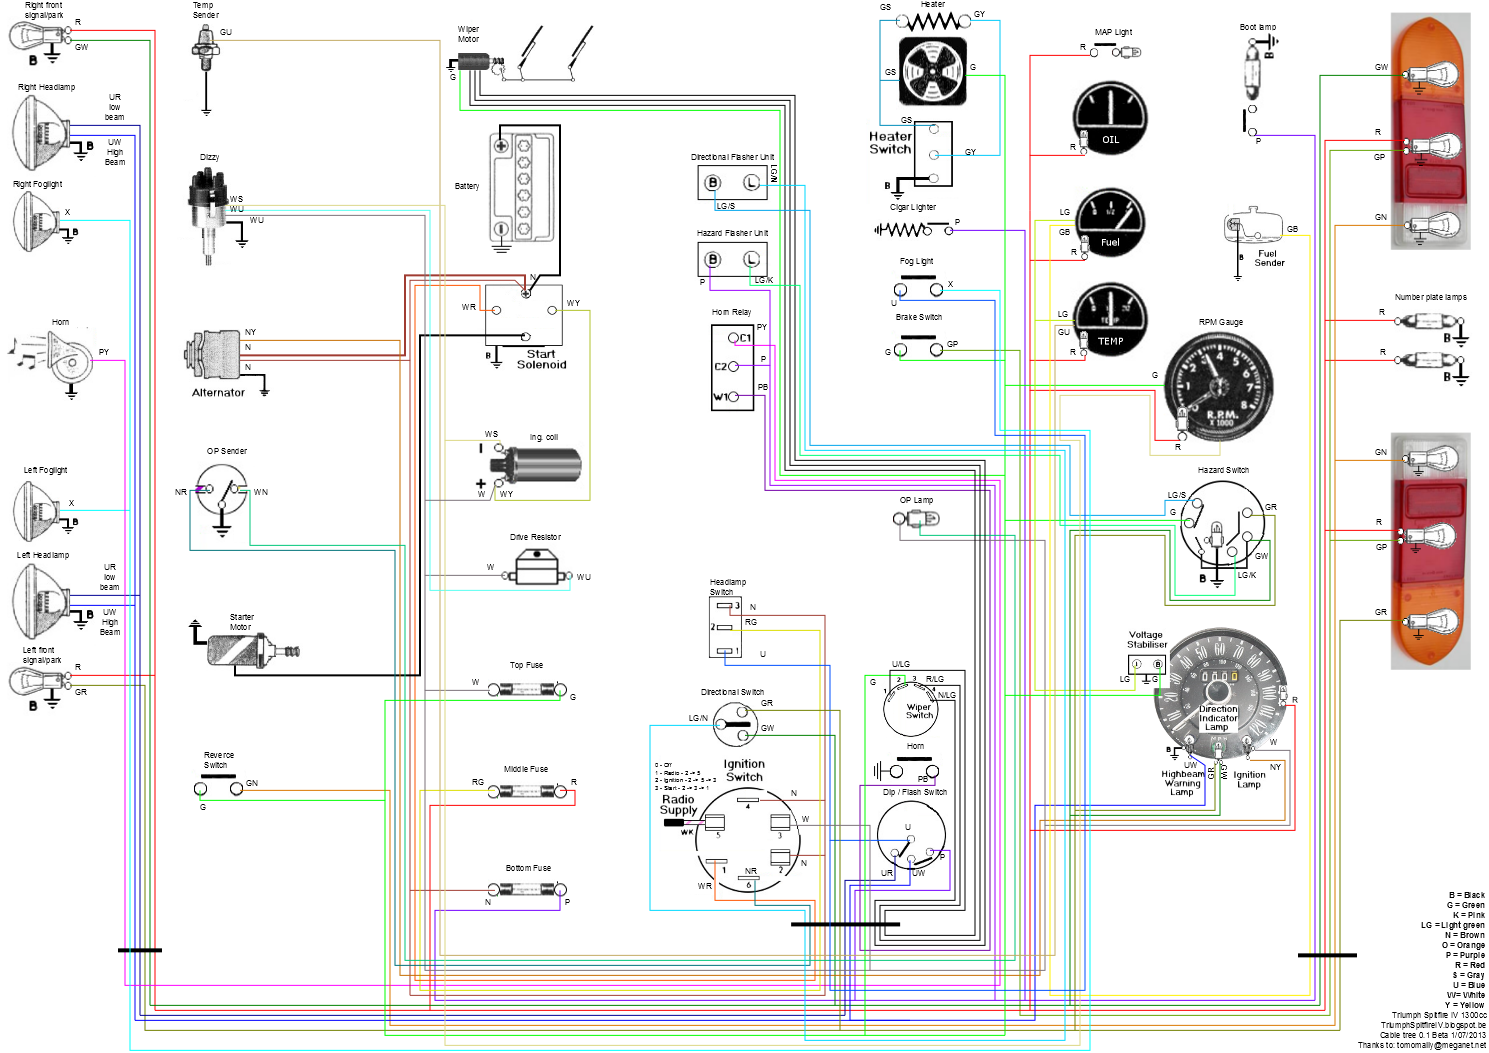 spitfire iv wiring diagram mk4 wiring diagram mk4 tdi wiring diagram \u2022 wiring diagrams j Foot Anatomy Diagram at creativeand.co